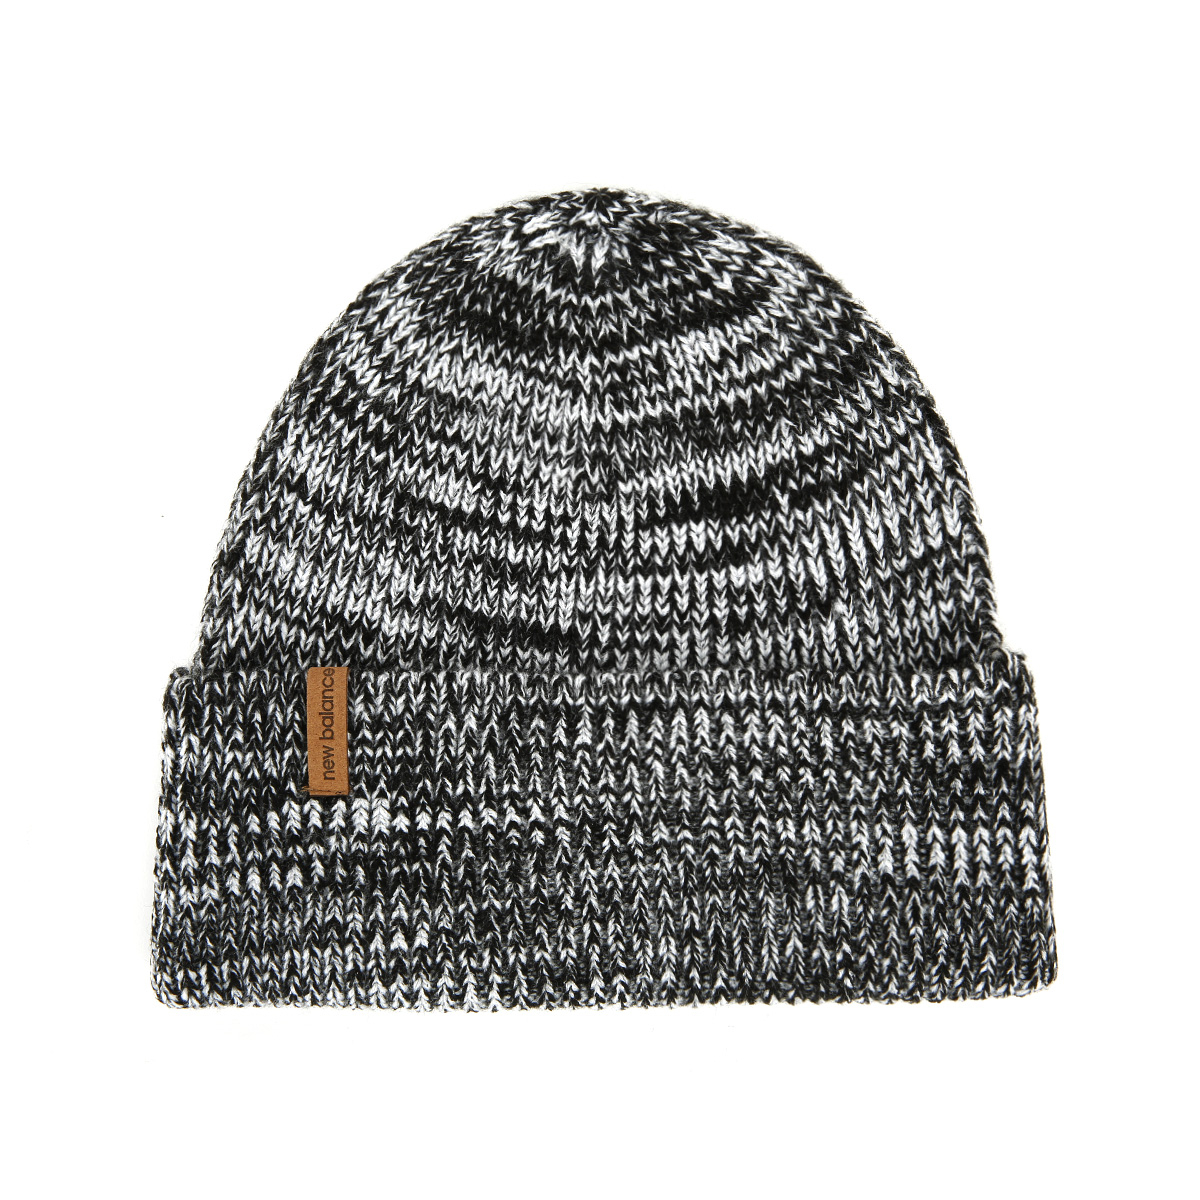 Details about New Balance Black Watchmans Beanie Unisex Warm Winter Hat 56a62626f40